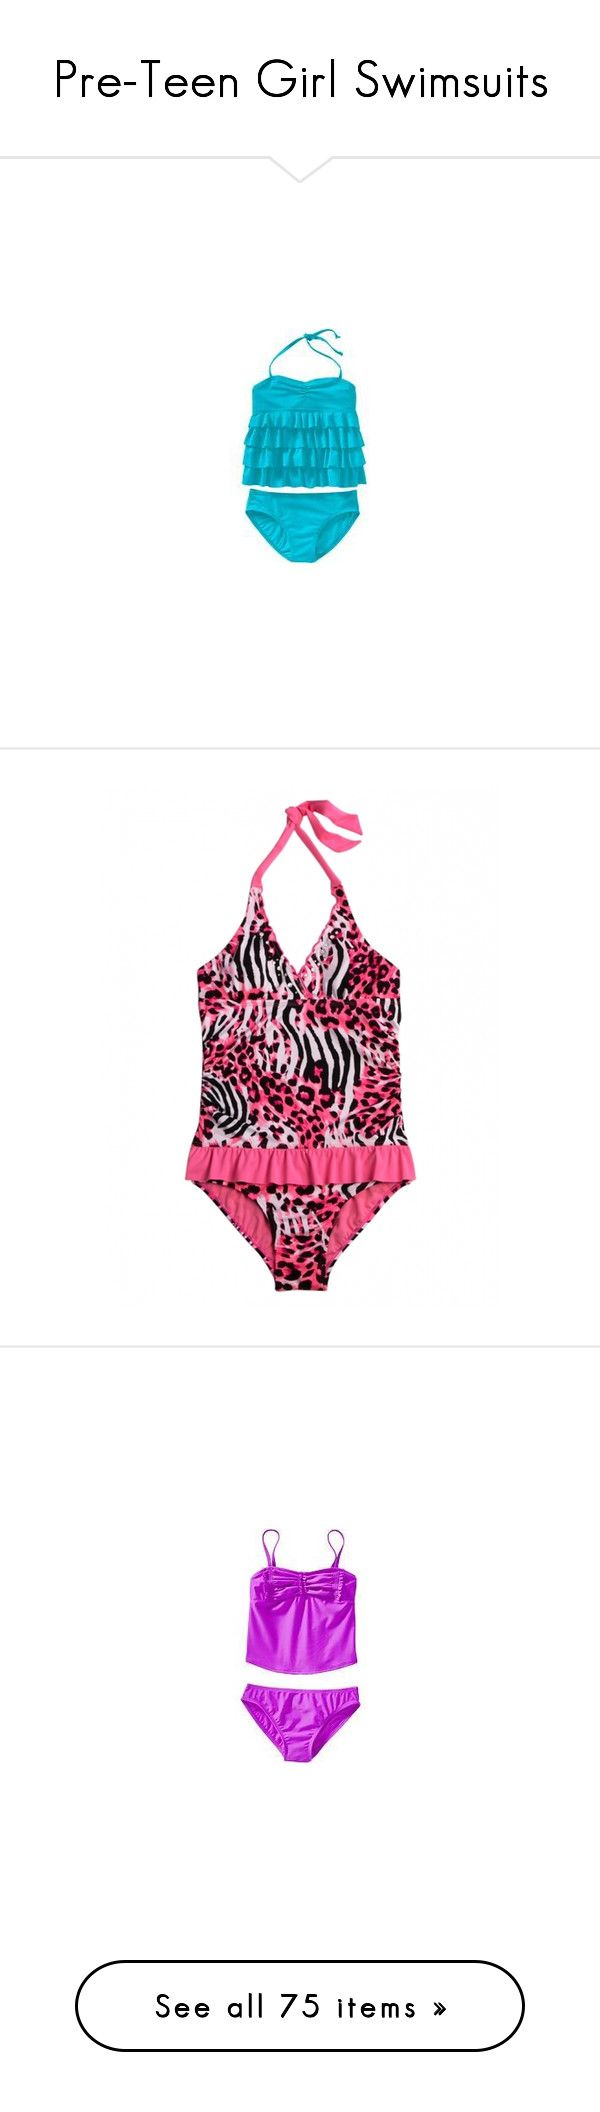 """Pre-Teen Girl Swimsuits"" by theneverlanders ❤ liked on Polyvore featuring swim, swimwear, girls, little girls, swimsuit complete, kids, kids clothes, one-piece swimsuits, sports swimsuit y striped swimsuit"